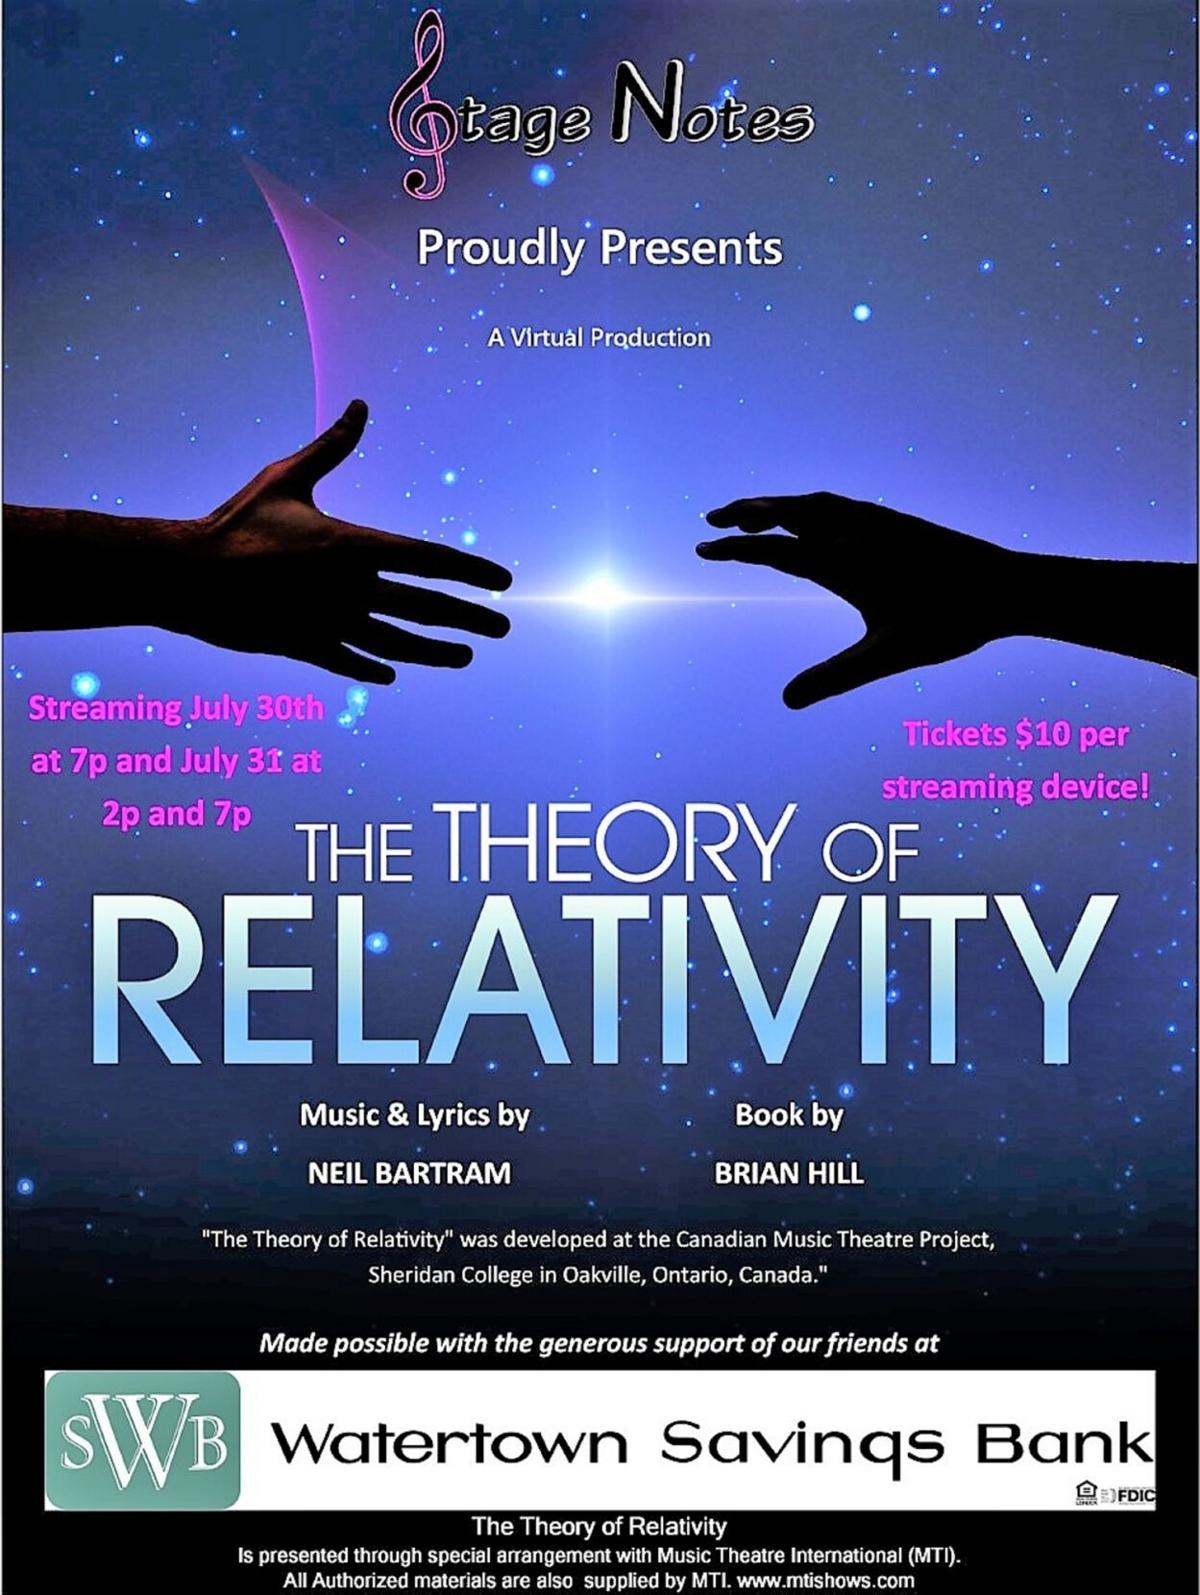 Stage Notes to present 'Theory of Relativity'